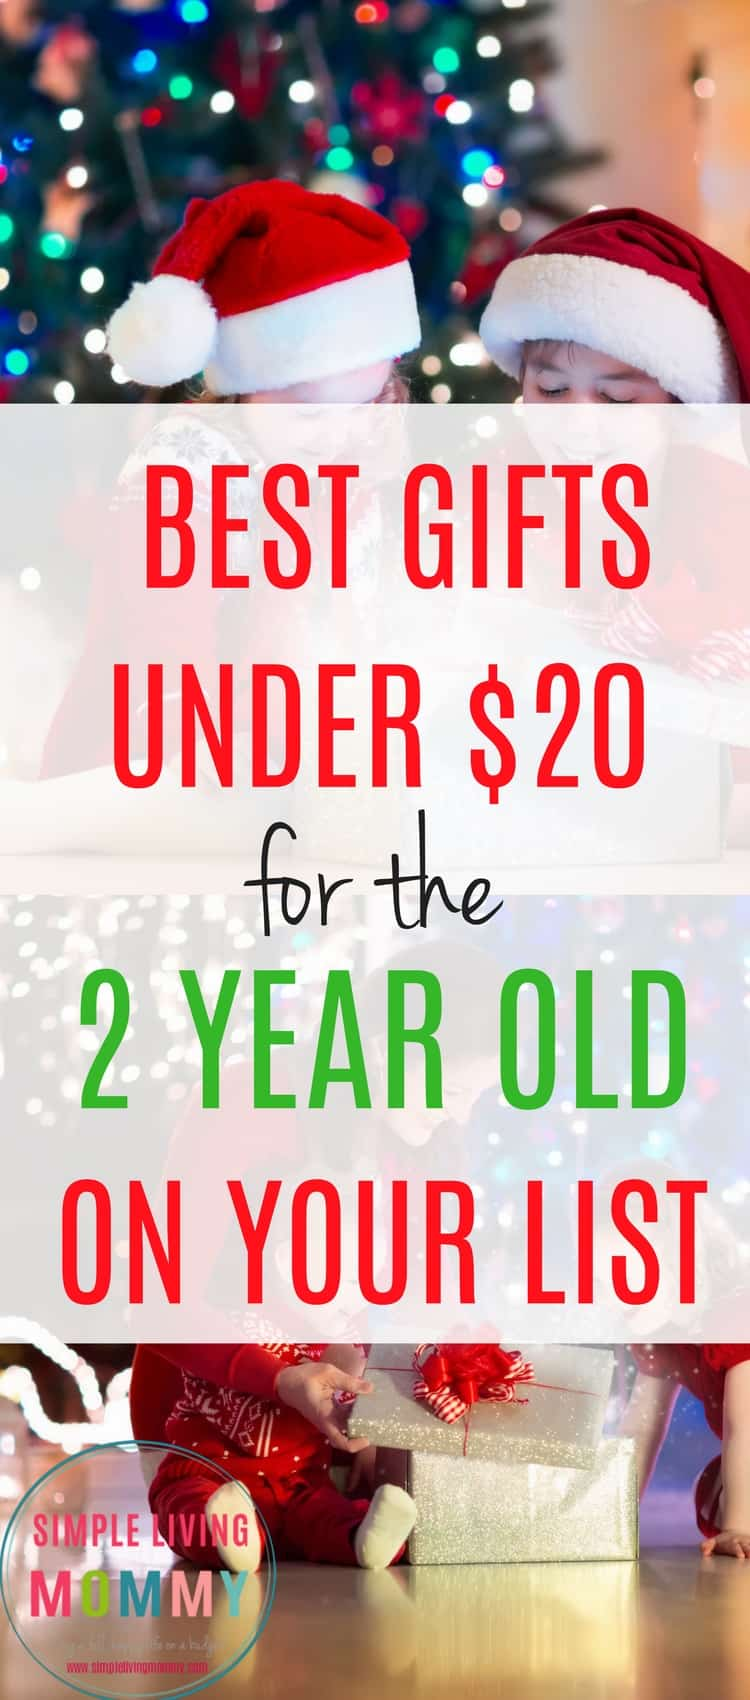 Out of gift ideas for the 2 year old on your list? These toys are perfect for toddlers and are inexpensive - all under $20!